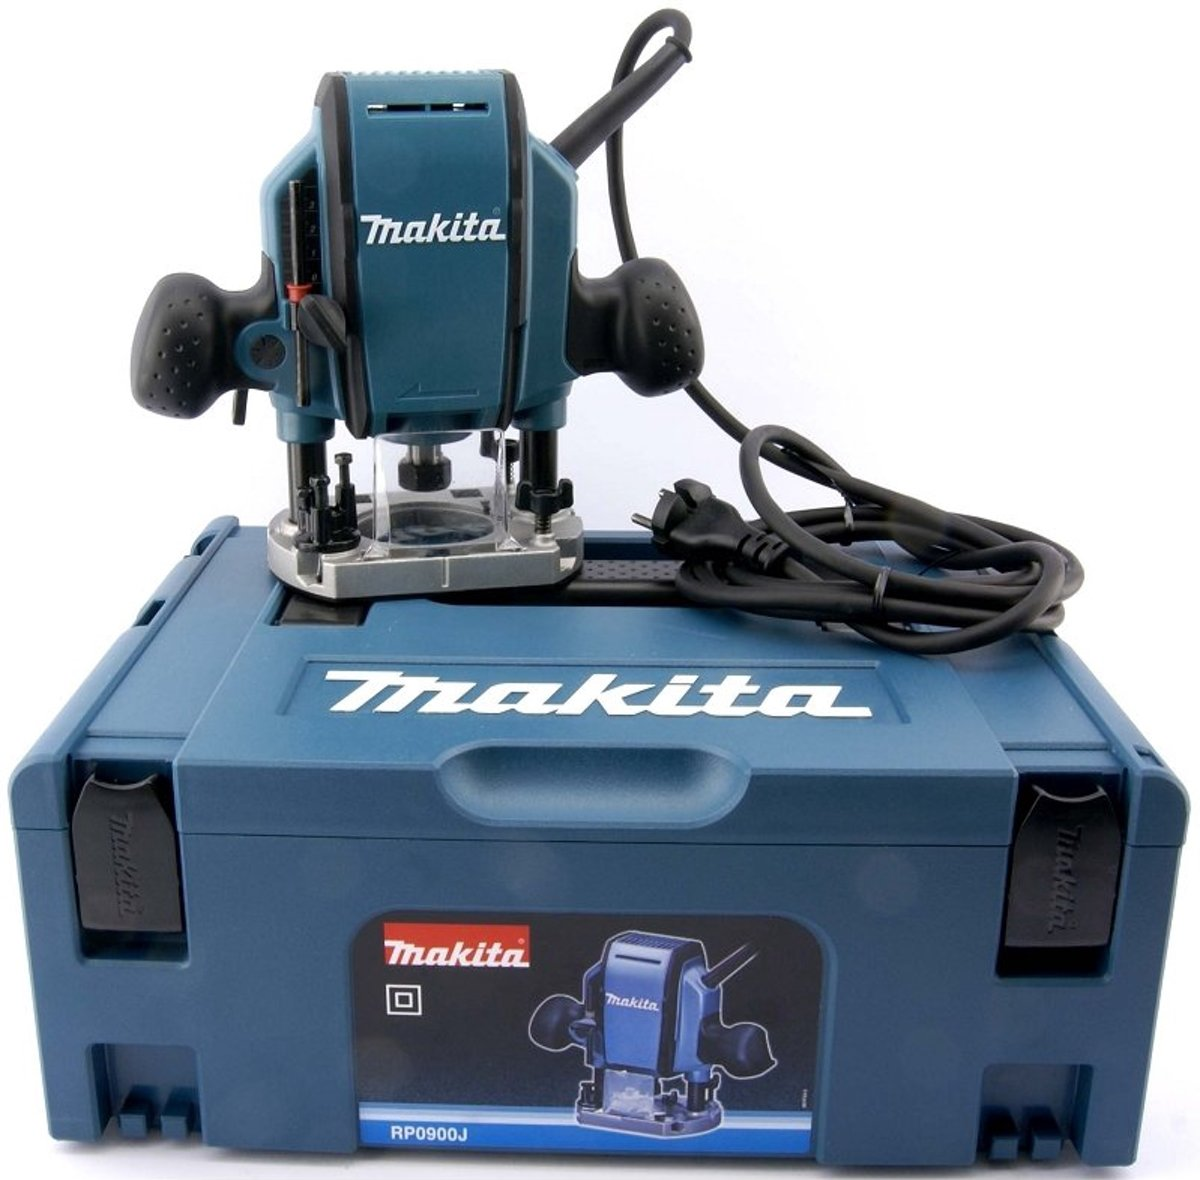 Makita Freesmachine Makita Bovenfrees Rp0900j 900 W In Mbox